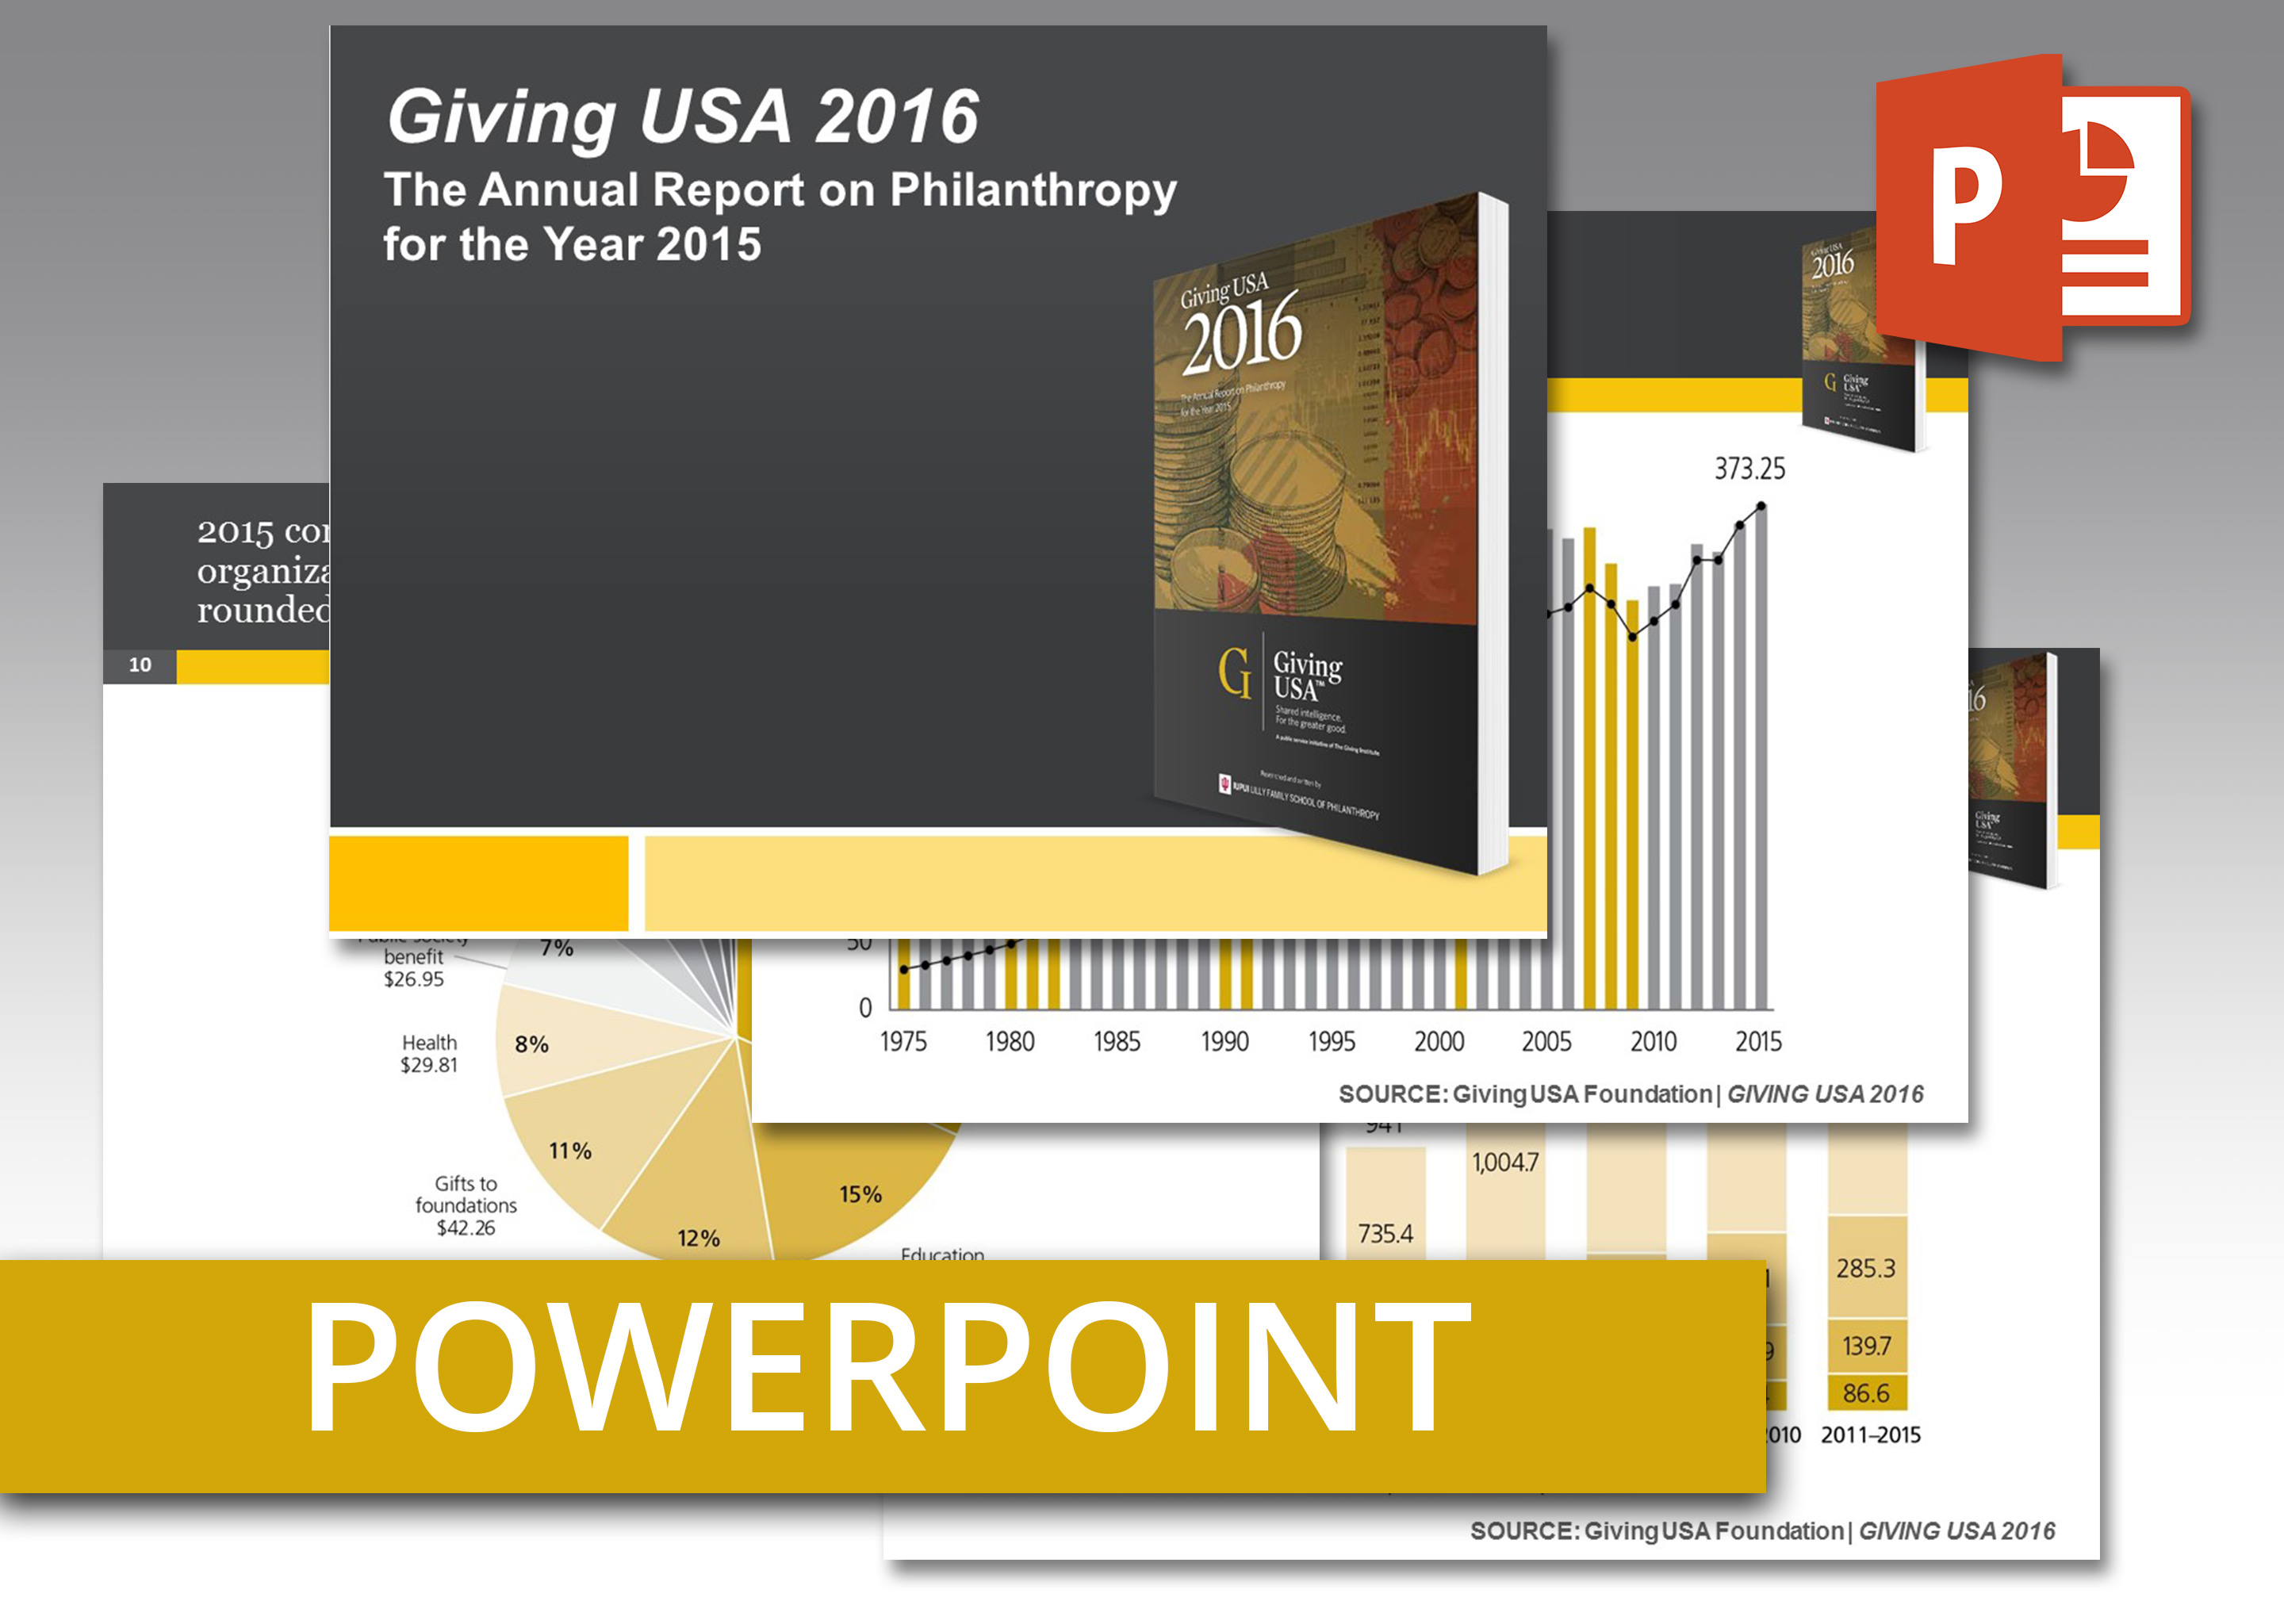 Coolmathgamesus  Sweet Giving Usa  Powerpoint An Easytouse Presentation Of Report  With Remarkable Giving Usa  Powerpoint An Easytouse Presentation Of Report Findings Including Talking Points With Alluring Star Spangled Banner Powerpoint Also   Writing Traits Powerpoint In Addition Create A Video From Powerpoint And Microsoft Office Templates For Powerpoint  As Well As How To Get A Powerpoint Additionally Five Paragraph Essay Powerpoint From Givingusaorg With Coolmathgamesus  Remarkable Giving Usa  Powerpoint An Easytouse Presentation Of Report  With Alluring Giving Usa  Powerpoint An Easytouse Presentation Of Report Findings Including Talking Points And Sweet Star Spangled Banner Powerpoint Also   Writing Traits Powerpoint In Addition Create A Video From Powerpoint From Givingusaorg